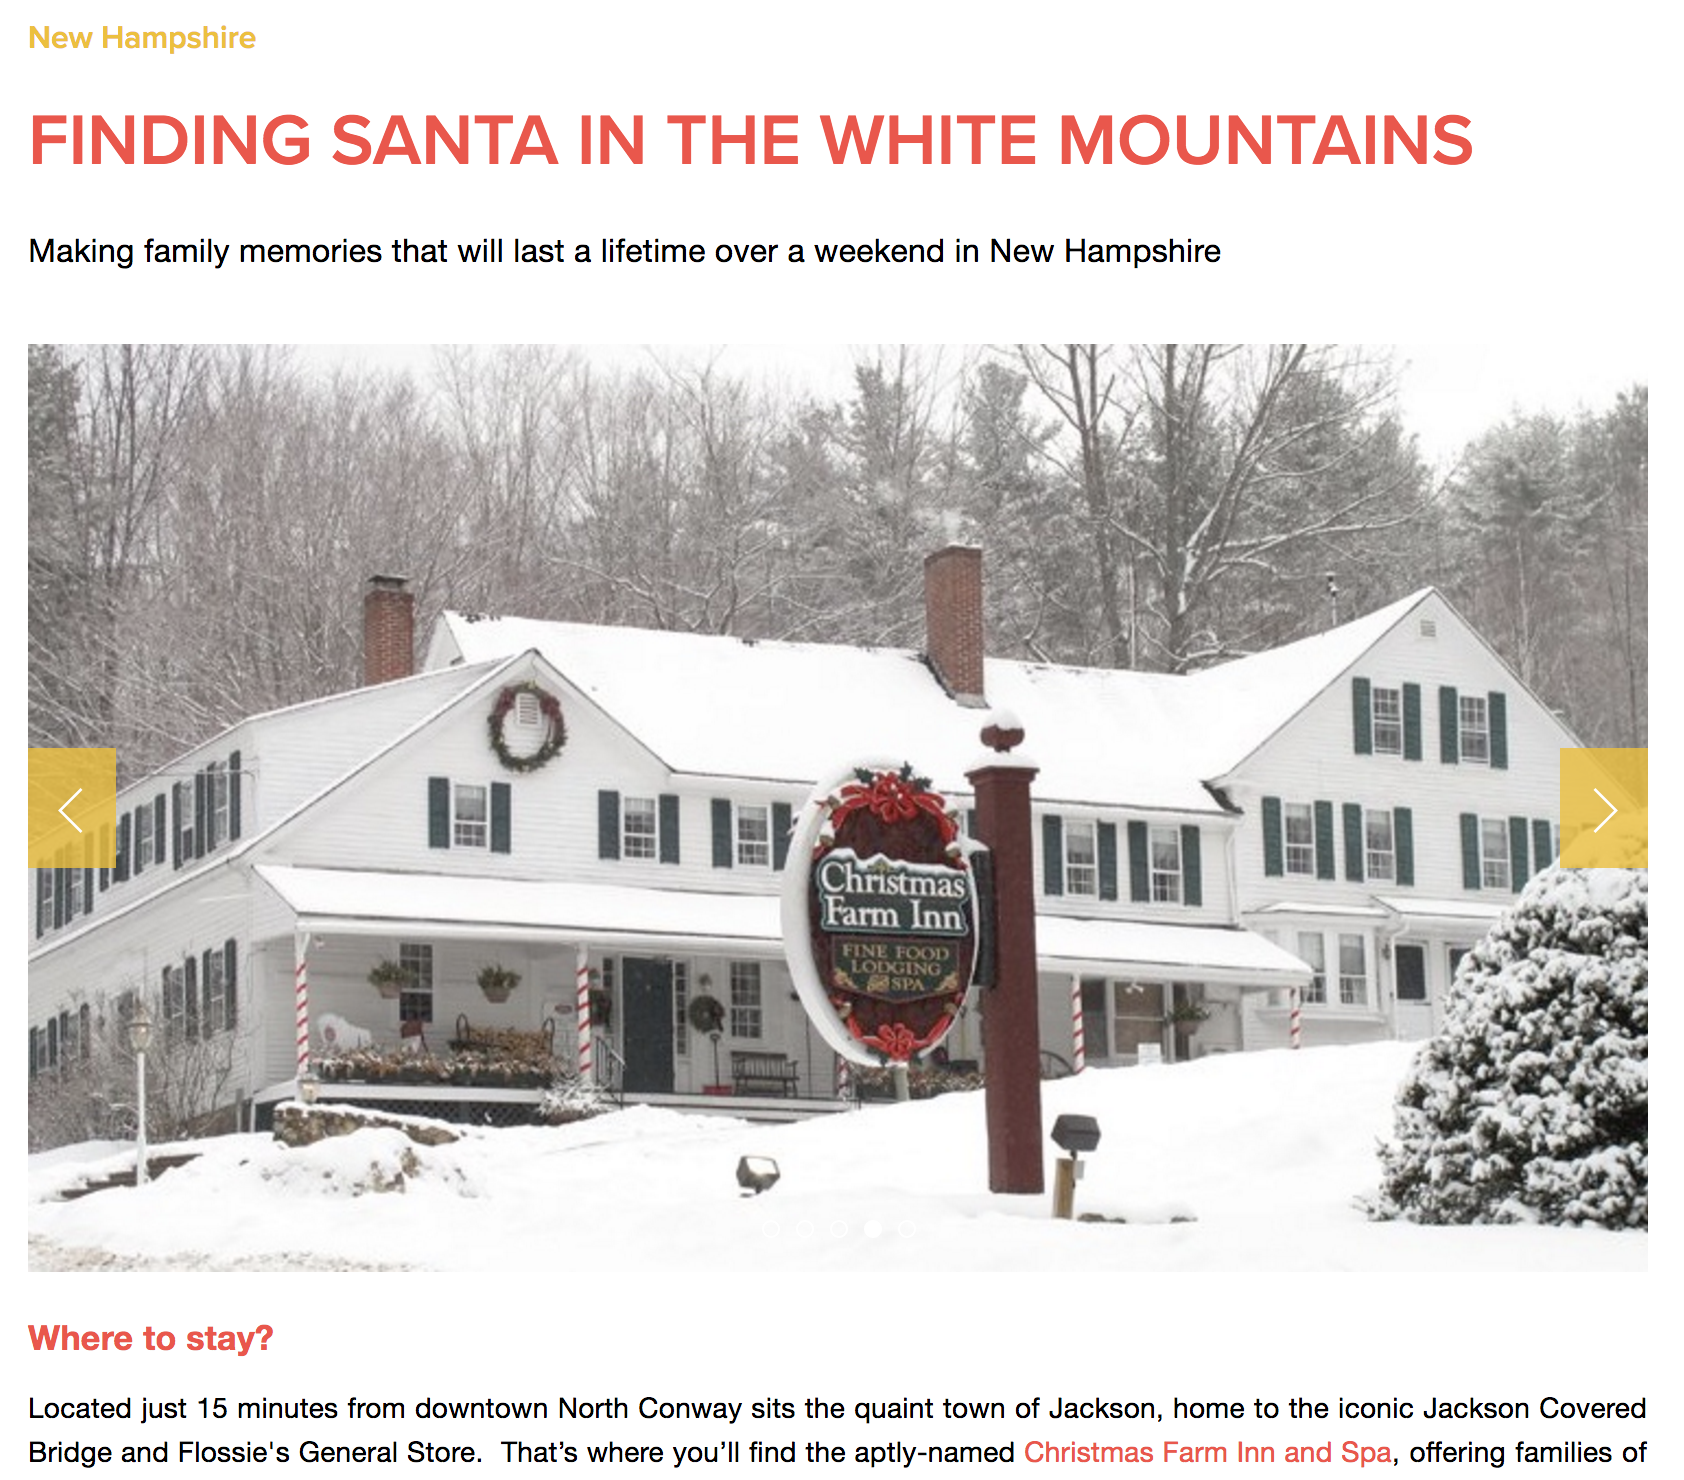 Finding Santa in the White Mountains